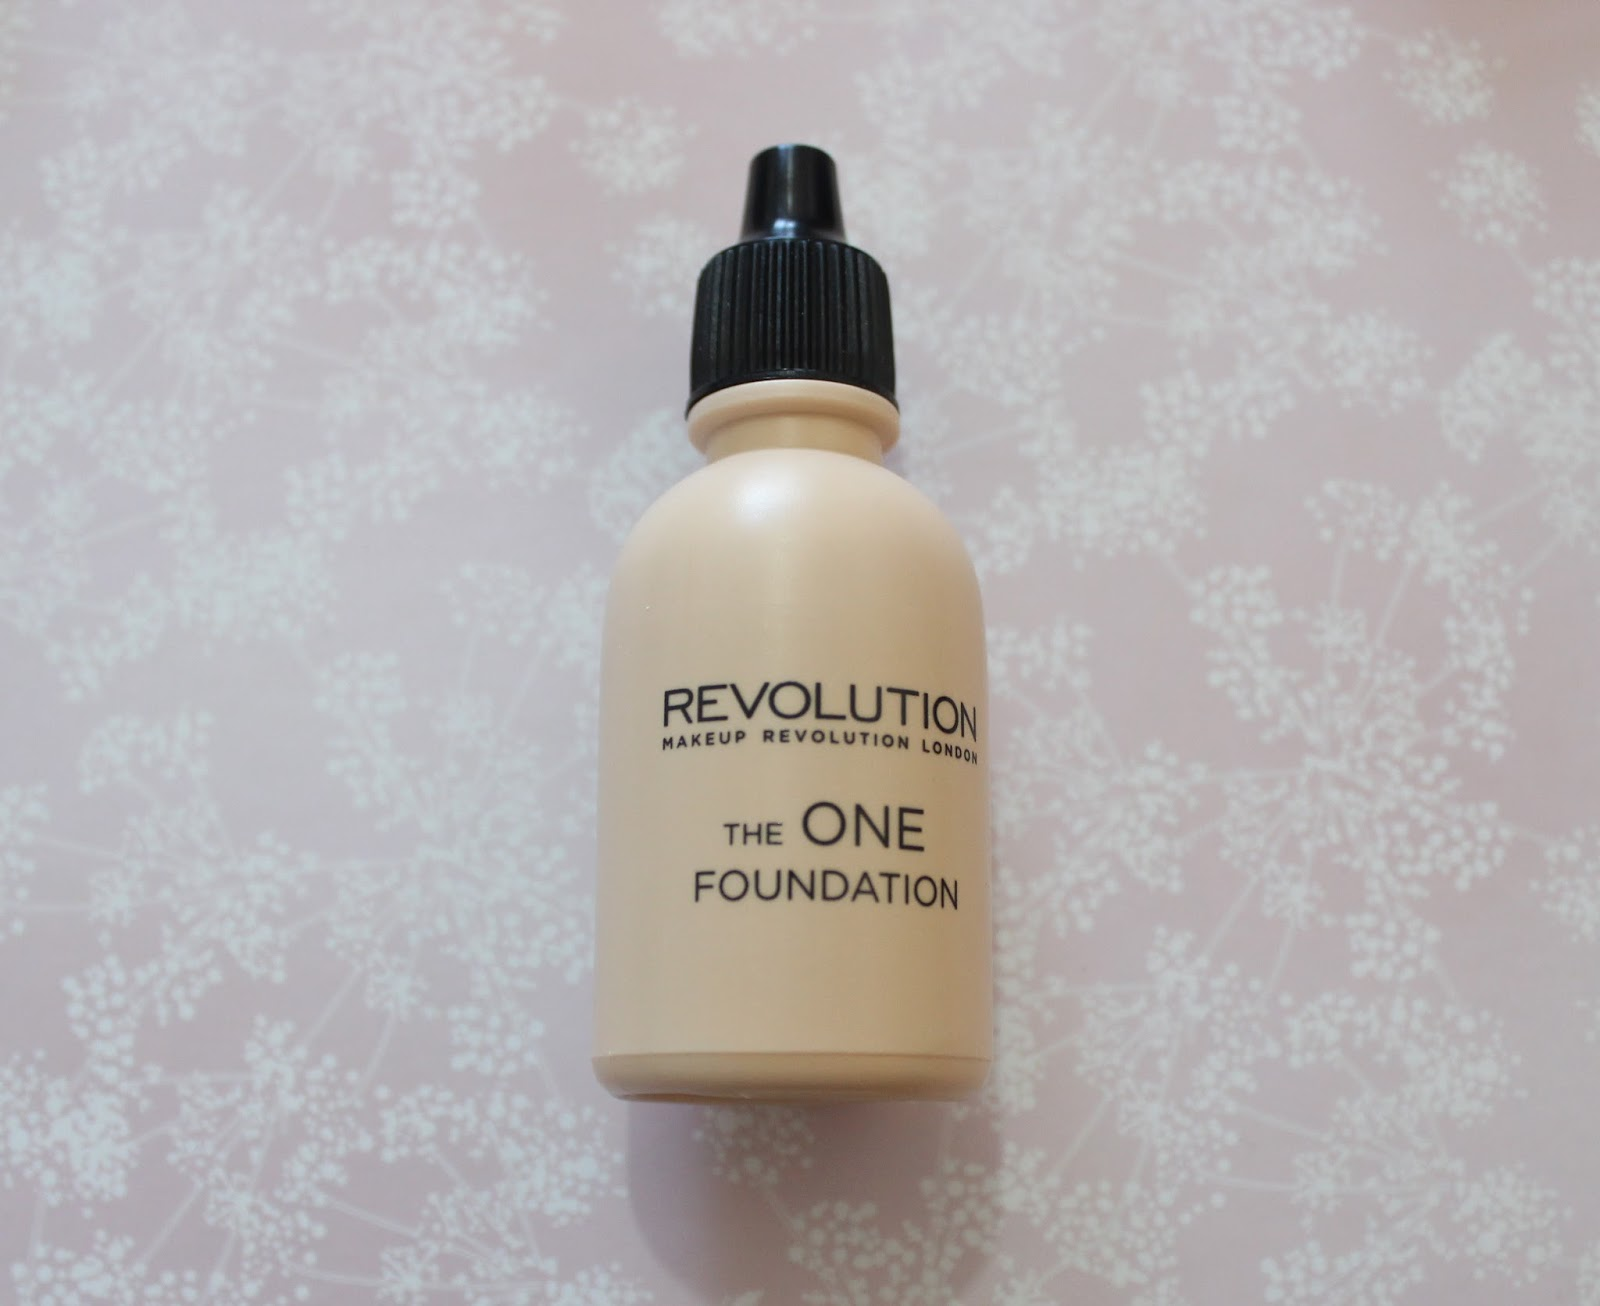 Makeup Revolution The One Foundation in Shade 2